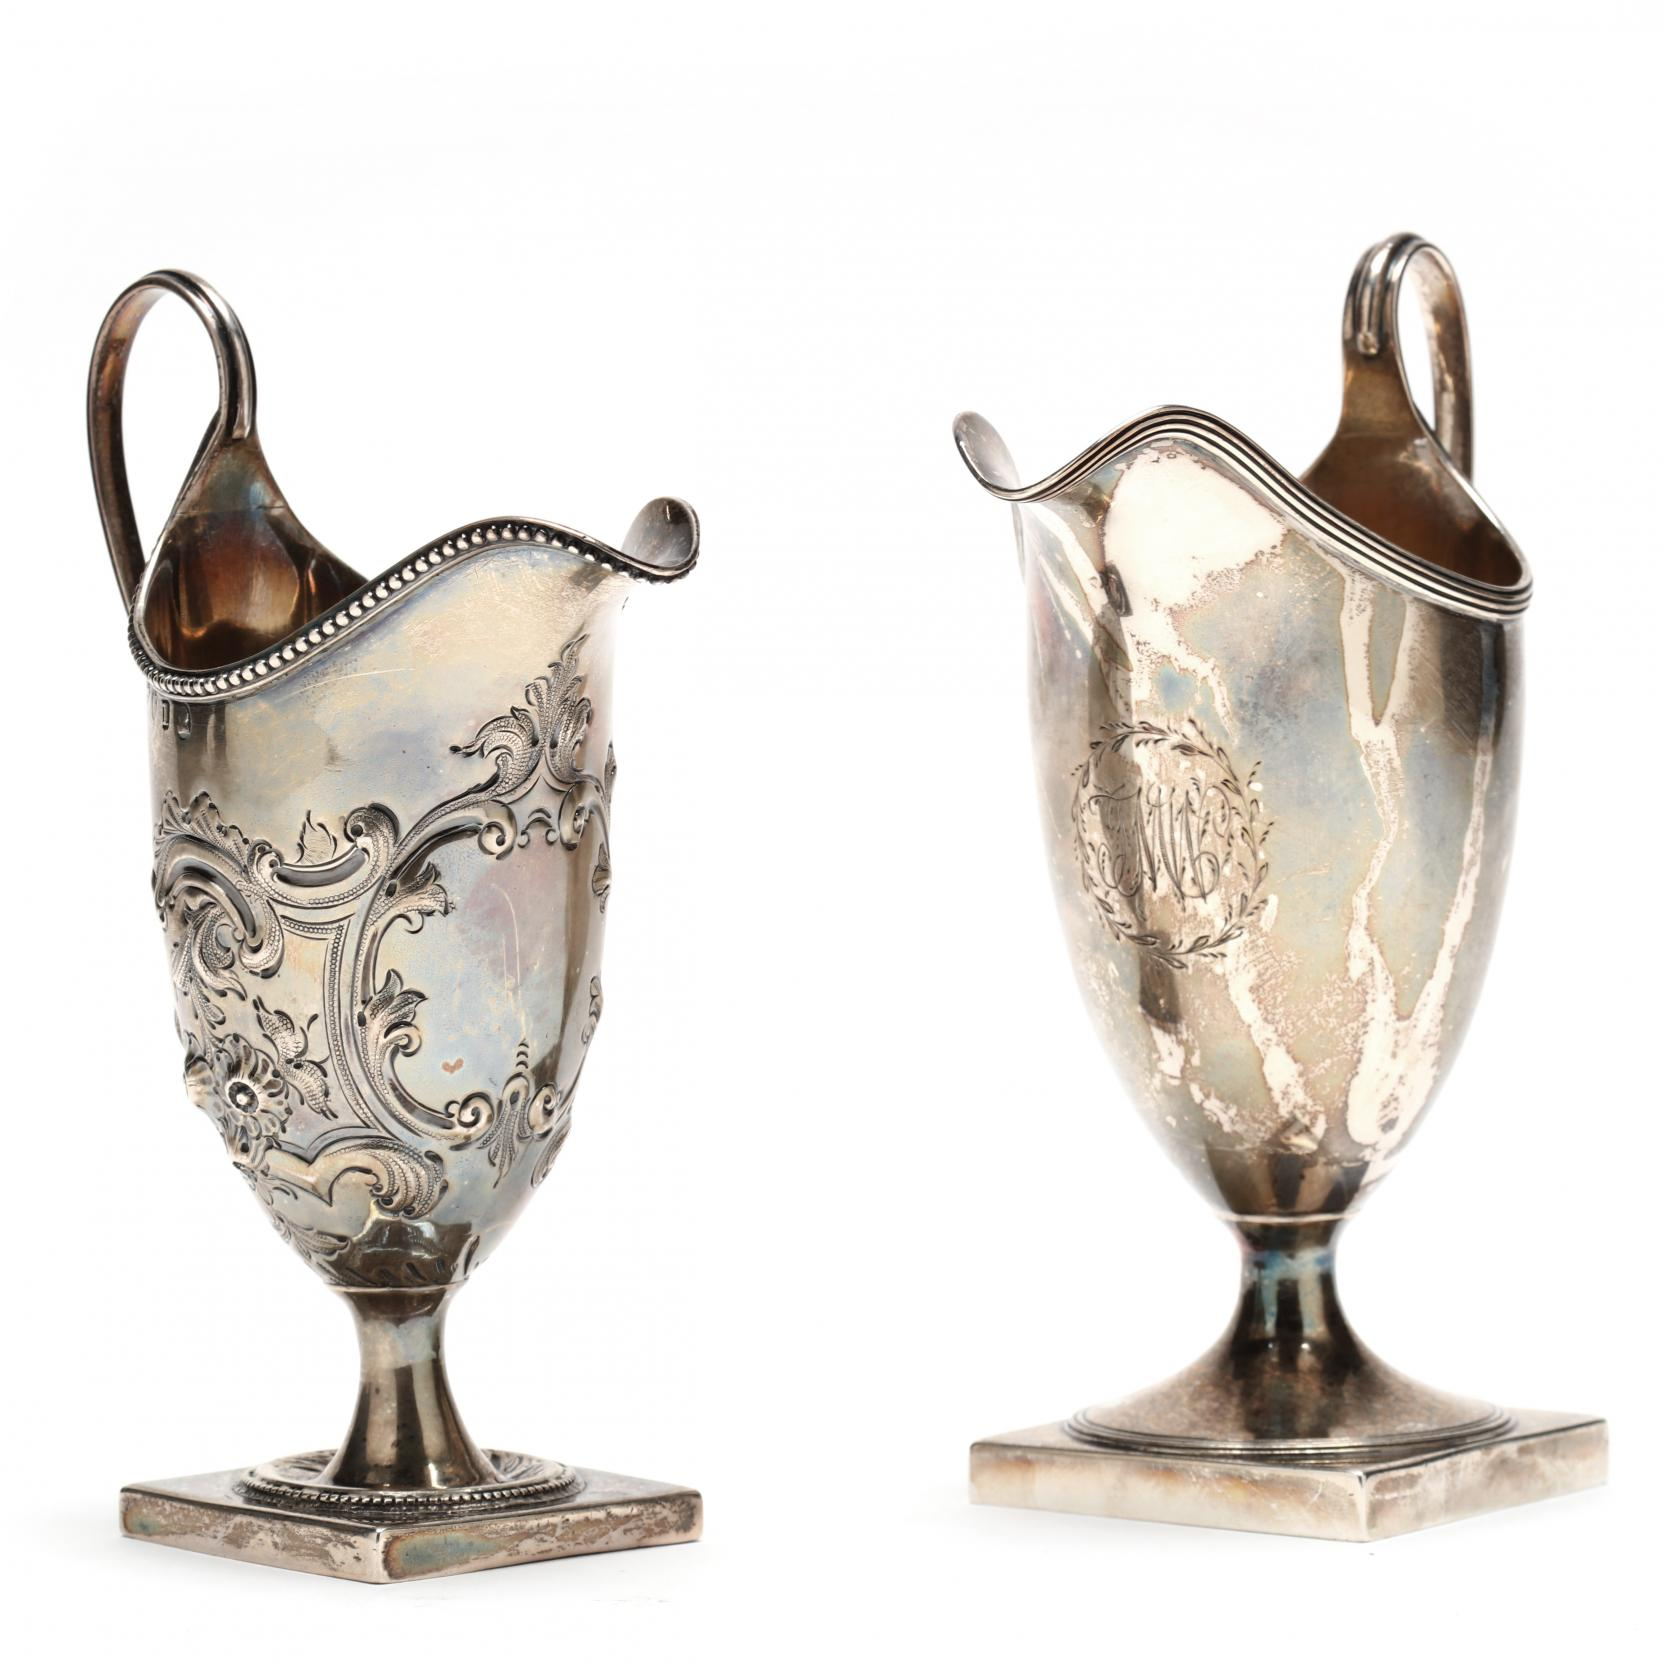 two-bateman-family-silver-creamers